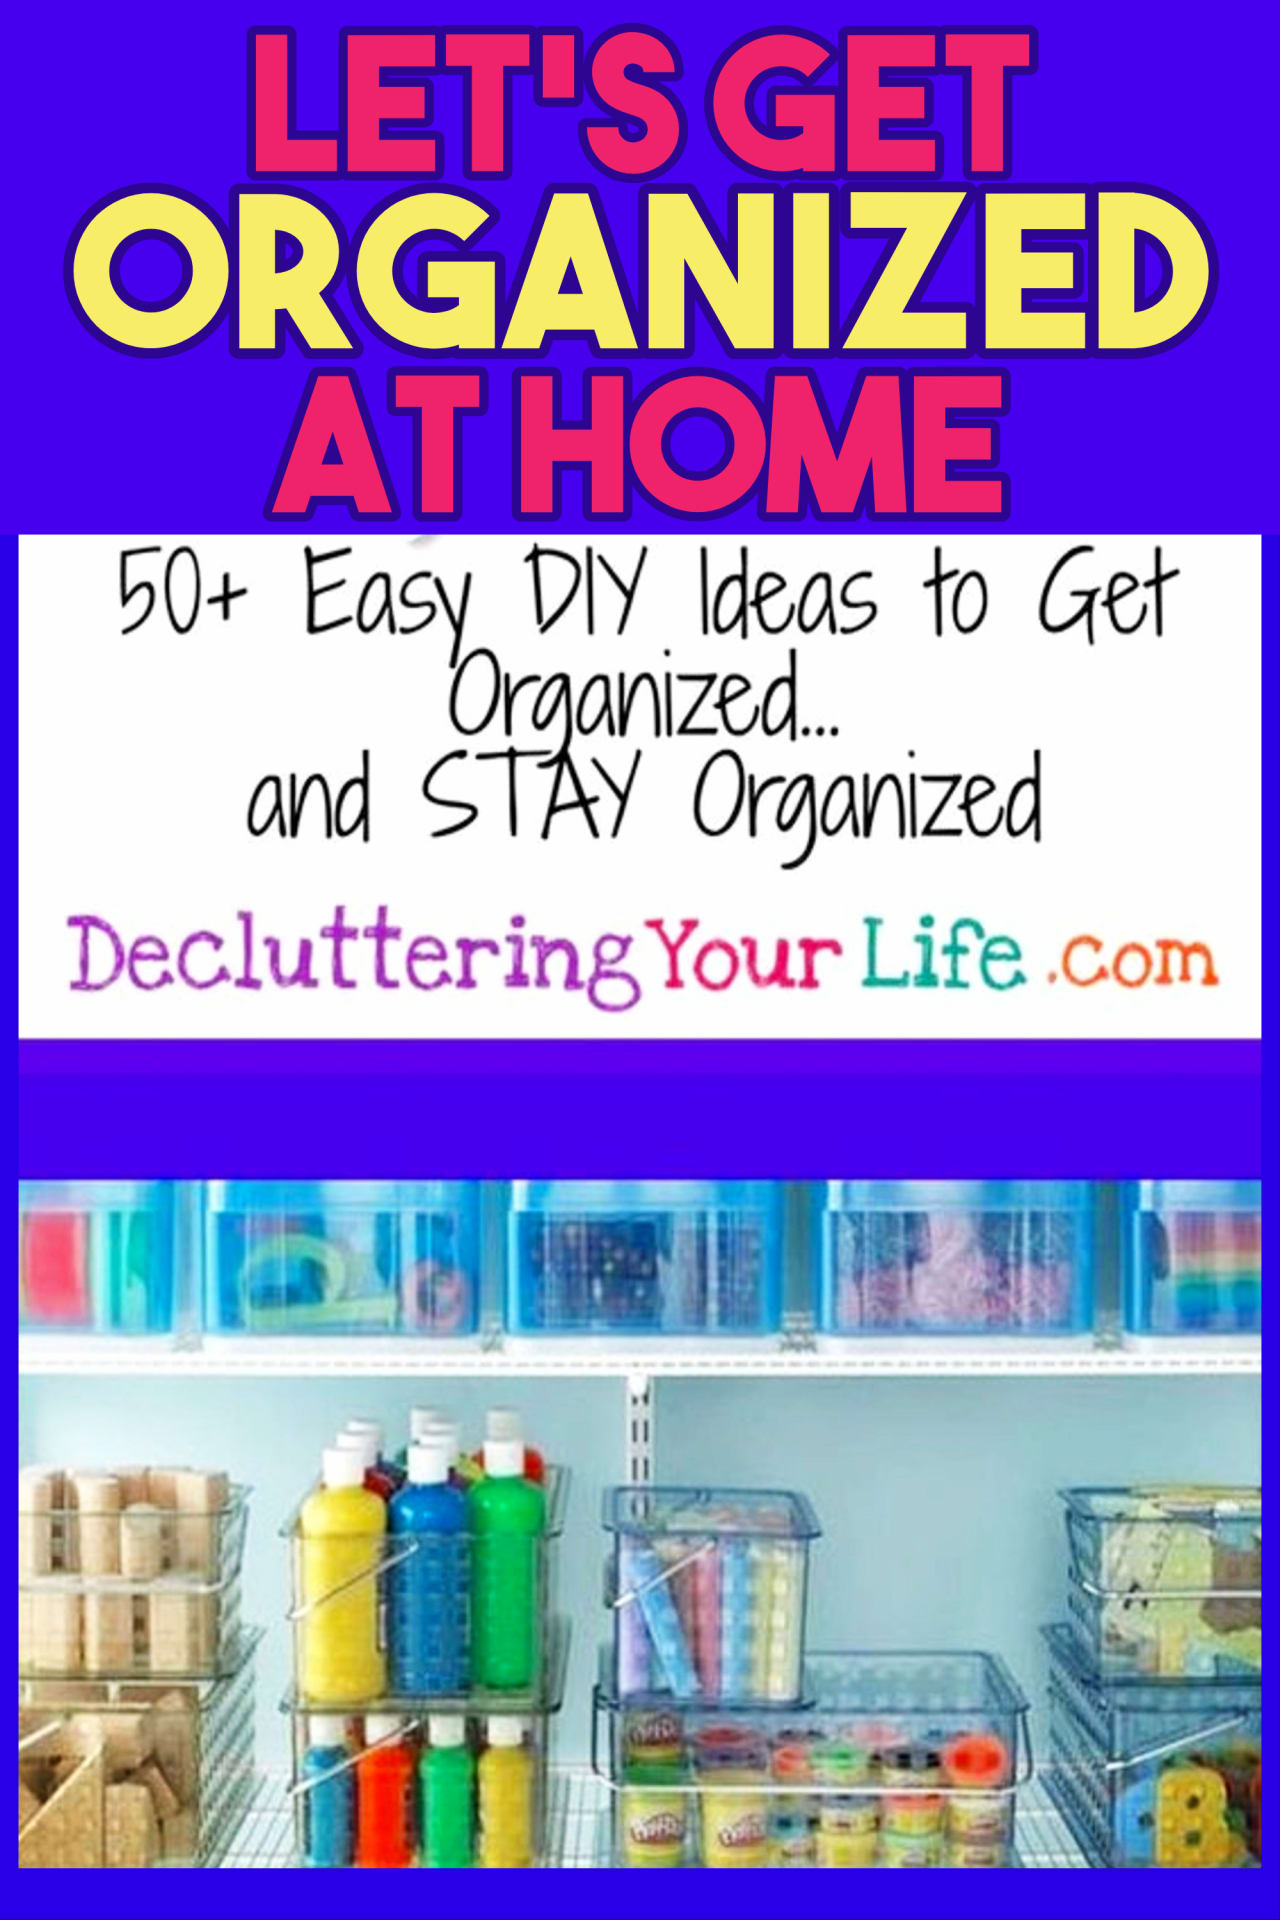 Get organized at home DIY ideas for getting organized at home on a budget WITHOUT feeling overwhelmed - declutter and organize your home